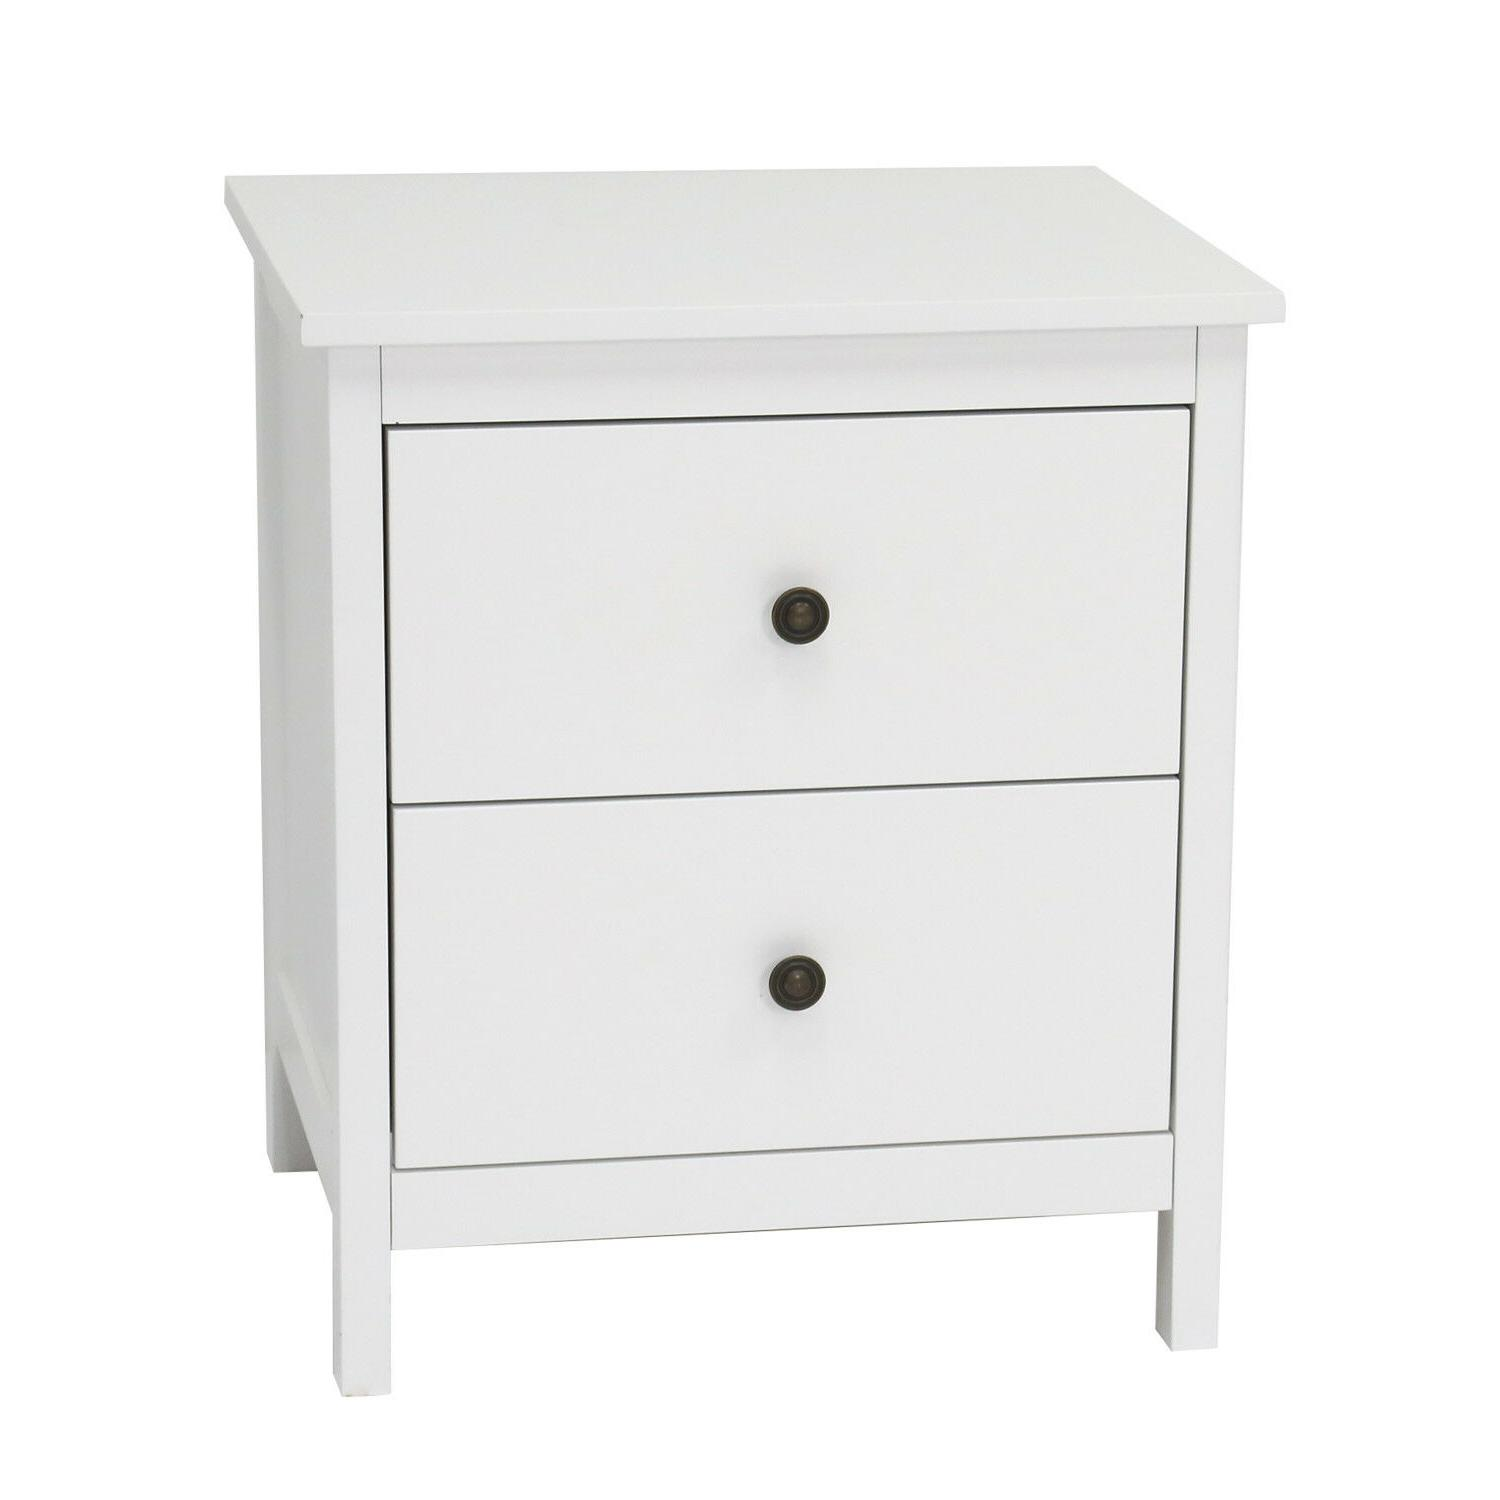 Nightstand Bedroom Storage Cabinet,w/Drawers